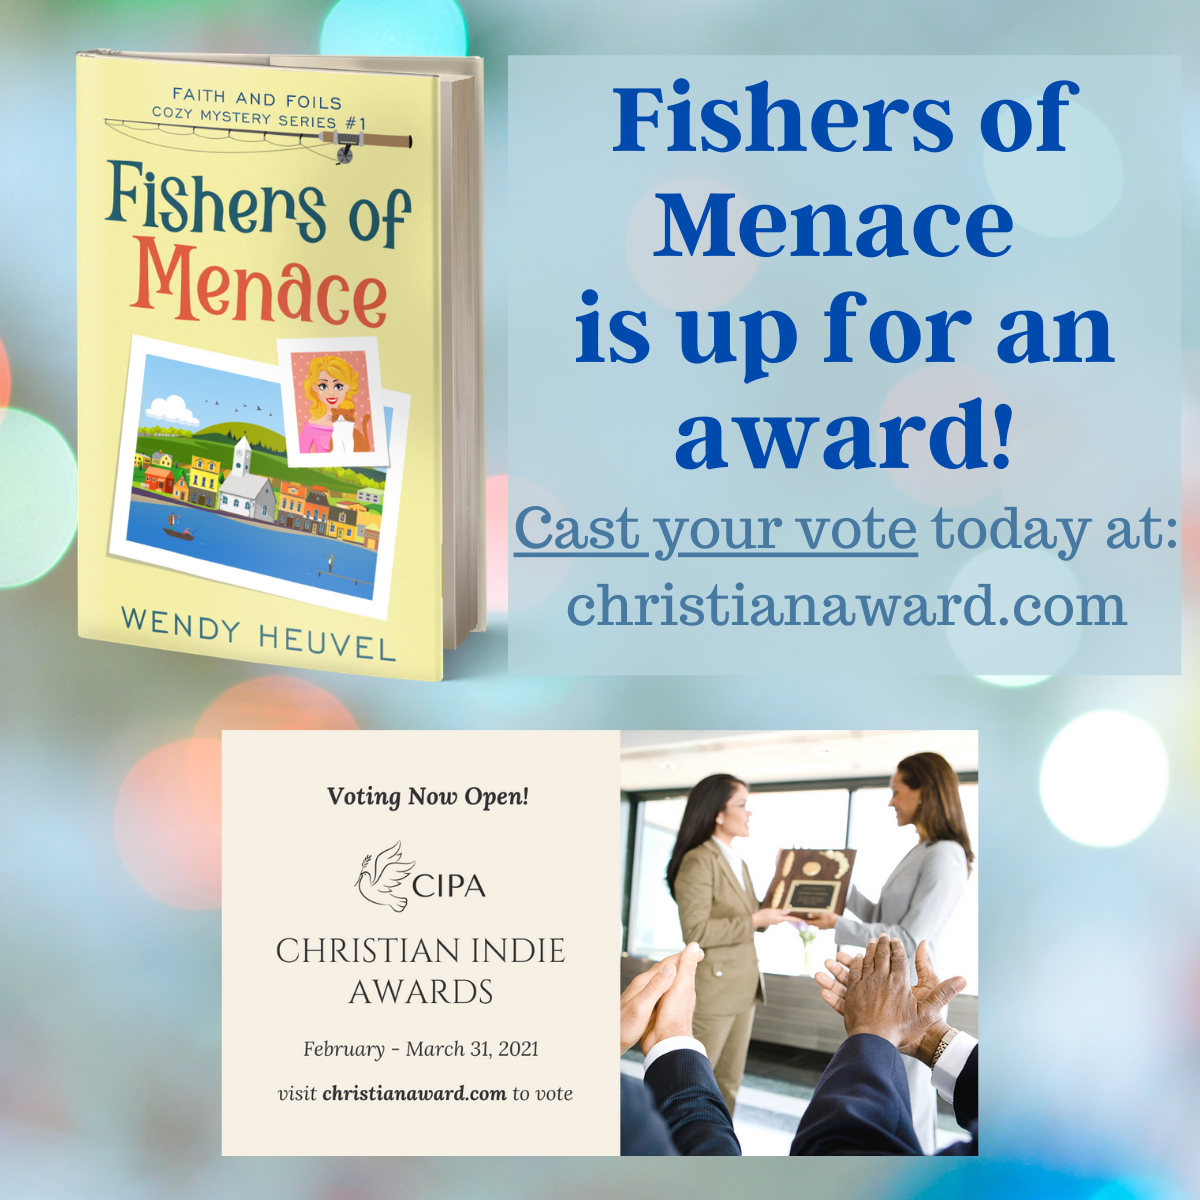 Fishers of Menace Needs Your Vote!